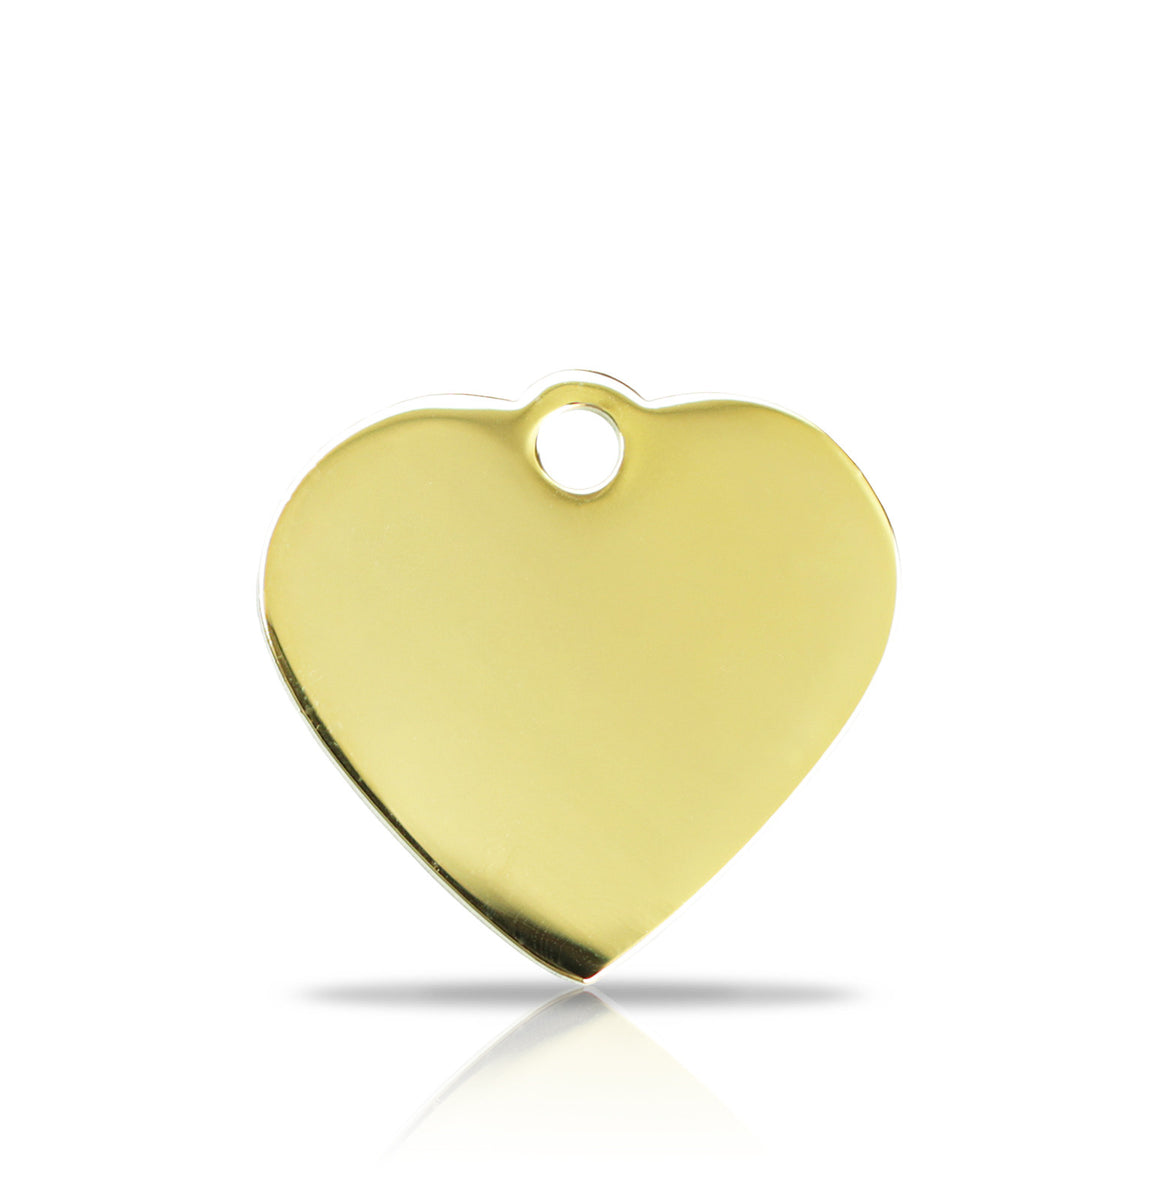 TaggIT Prestige Small Heart Gold iMarc Pet Tag